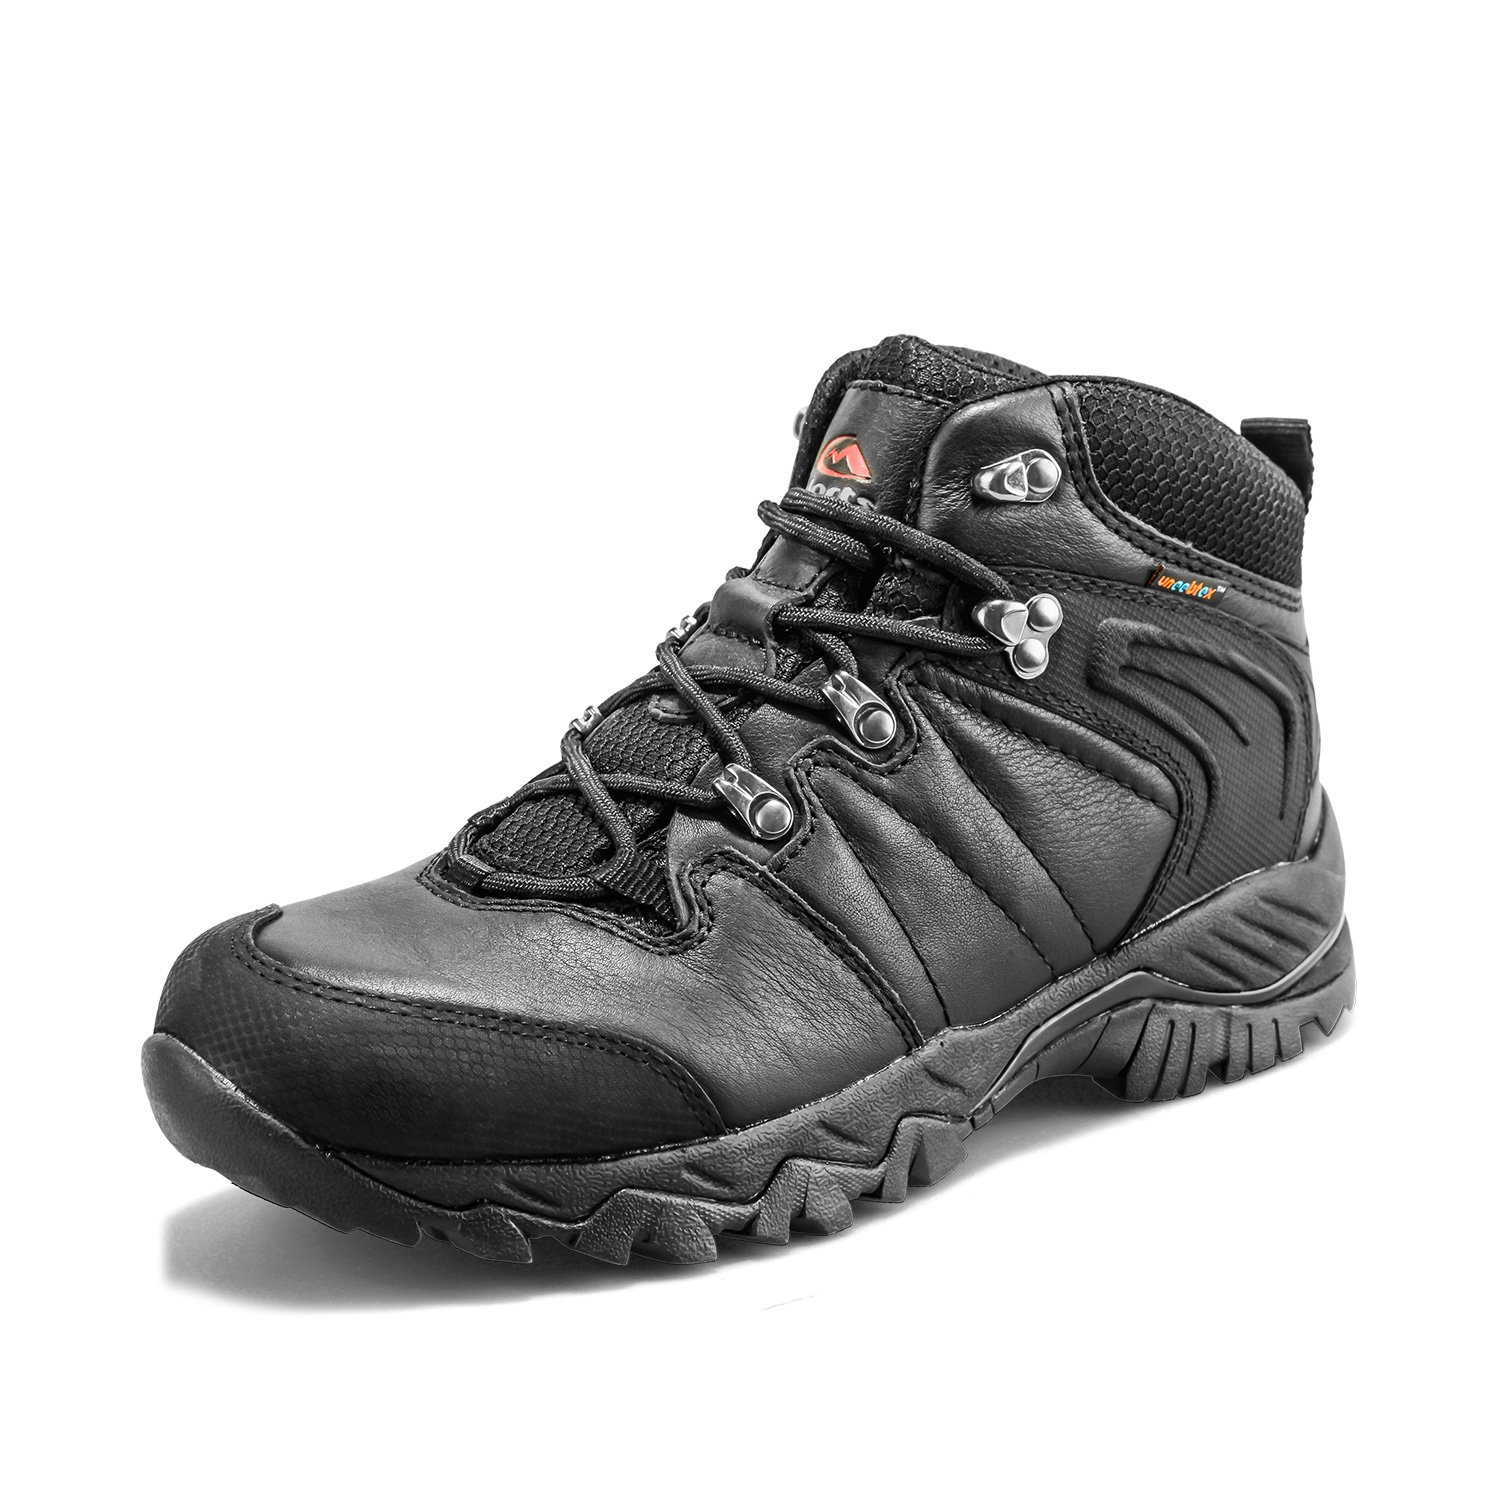 Clorts Men's Waterproof Hiking Boot Outdoor Backpacking Hiker Black HKM-822D US9.5 by Clorts